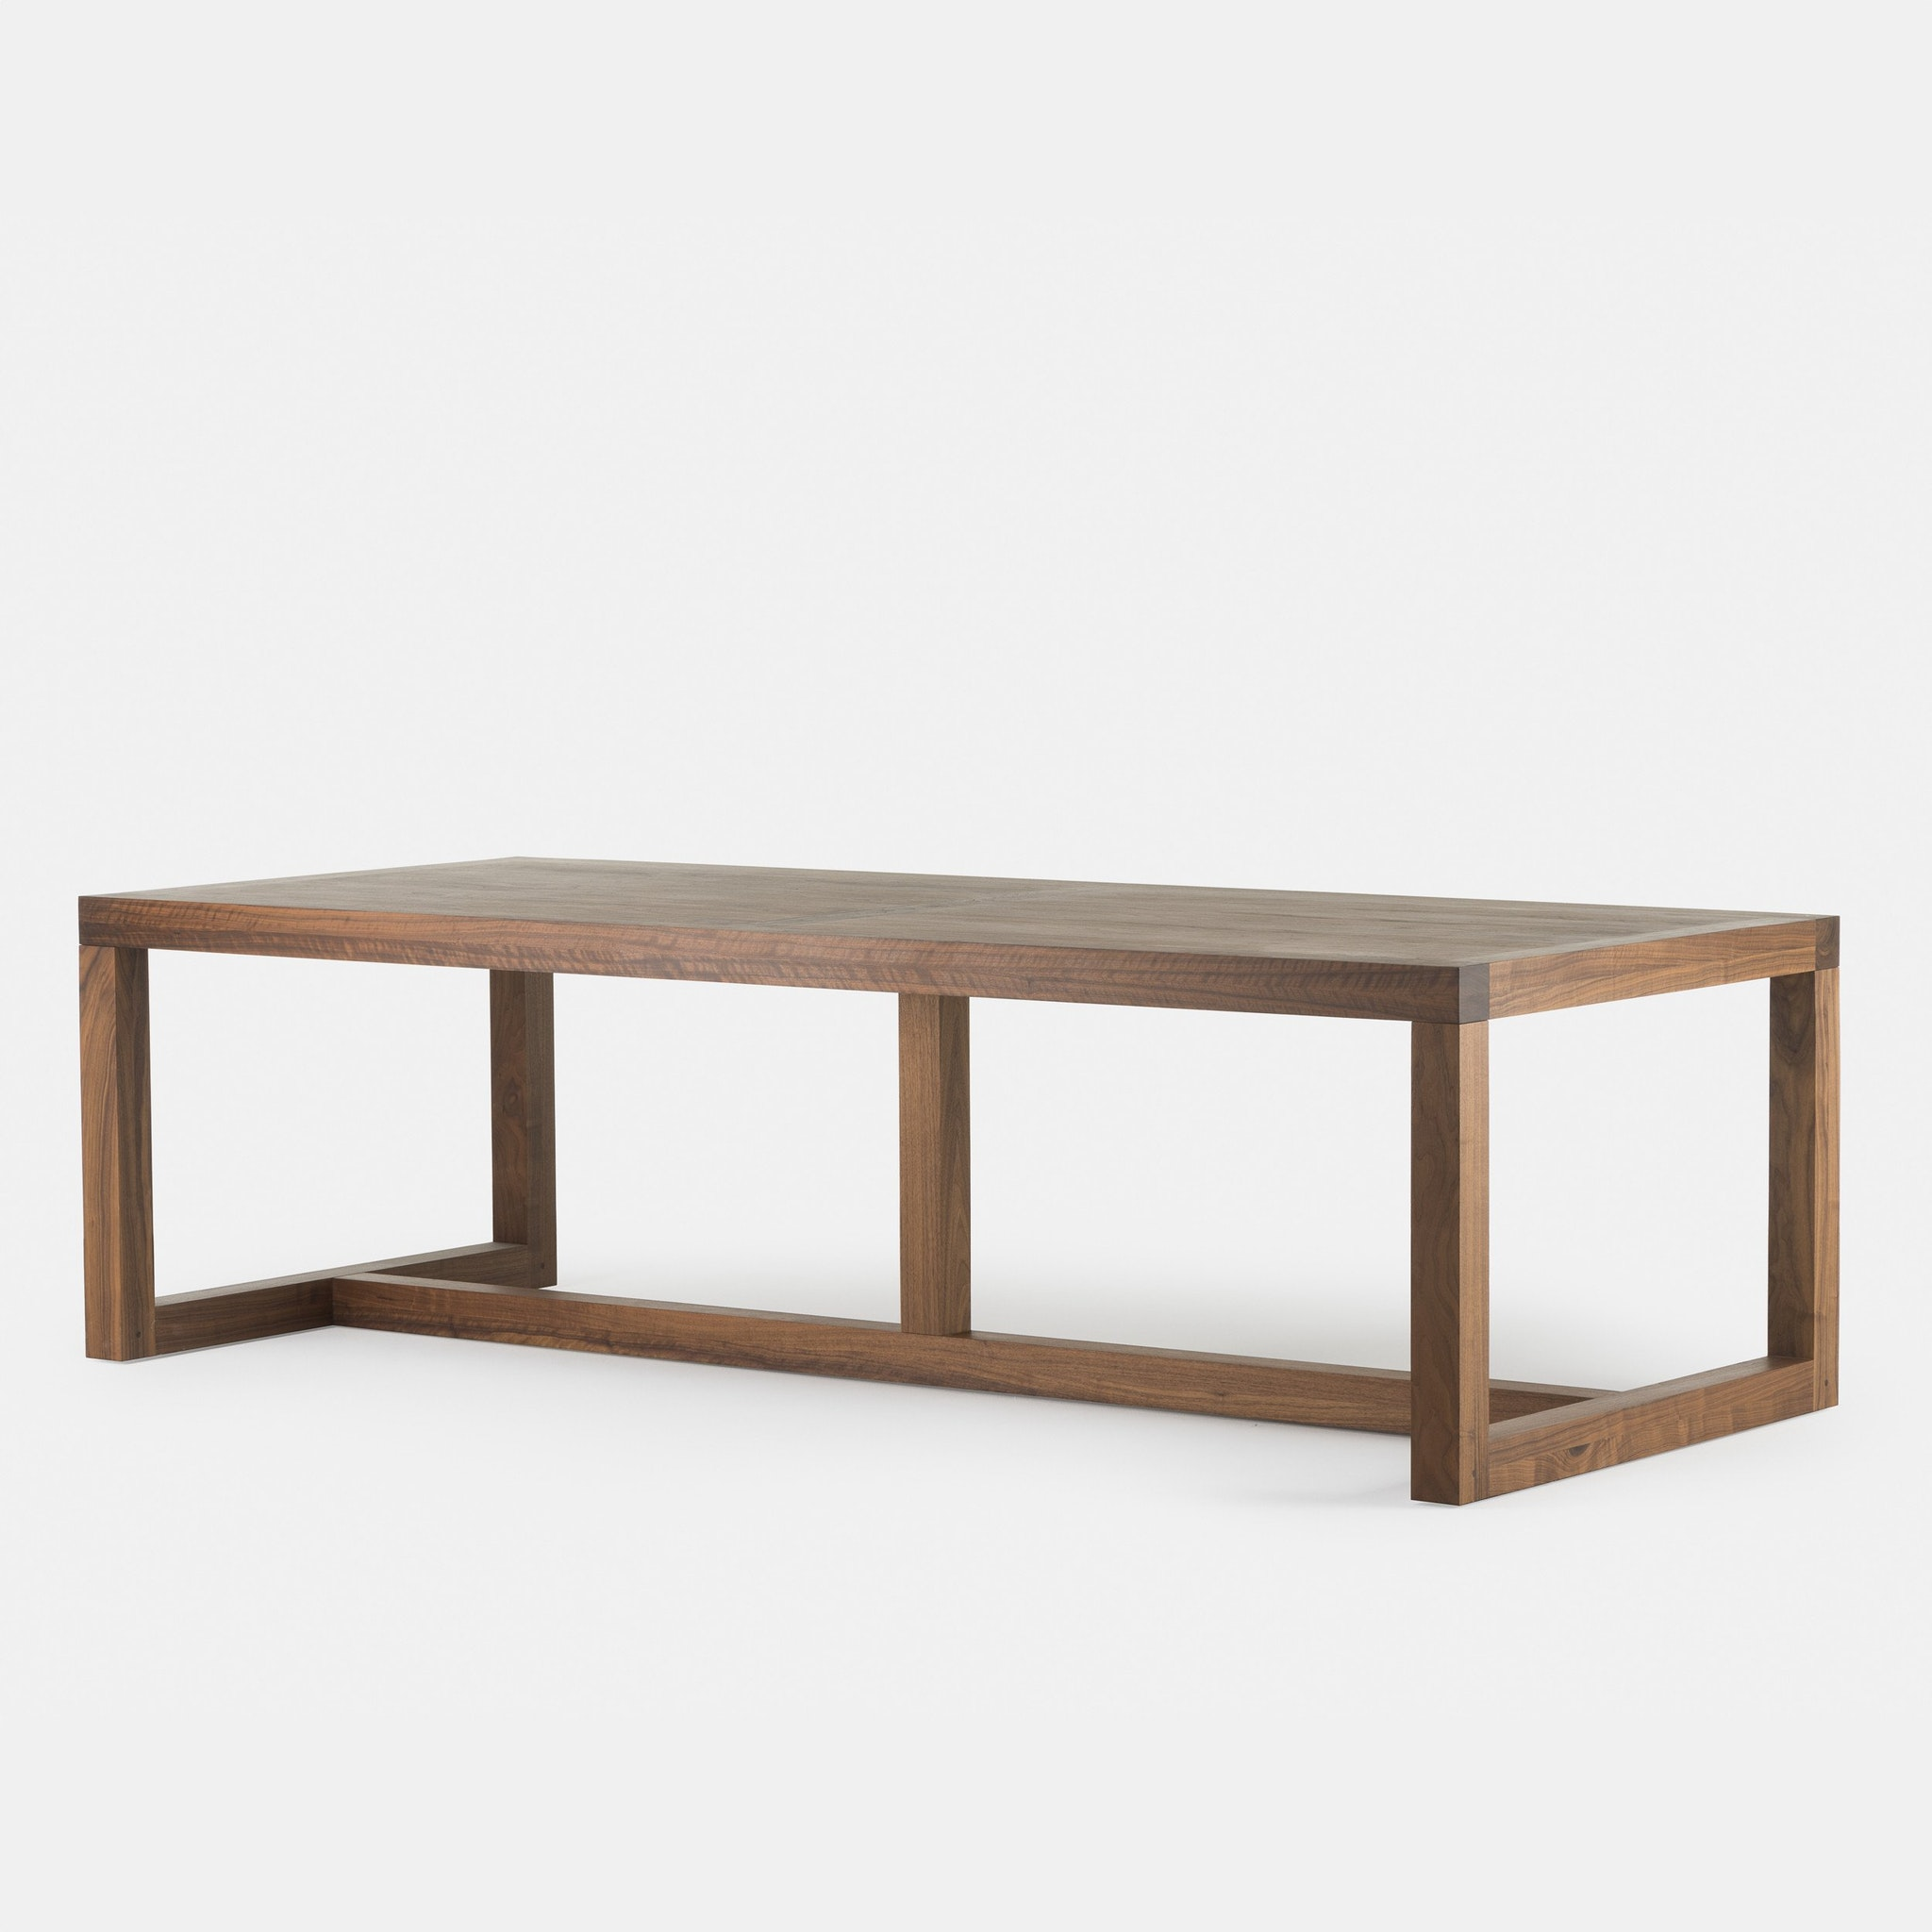 Structure Table by Neri&Hu